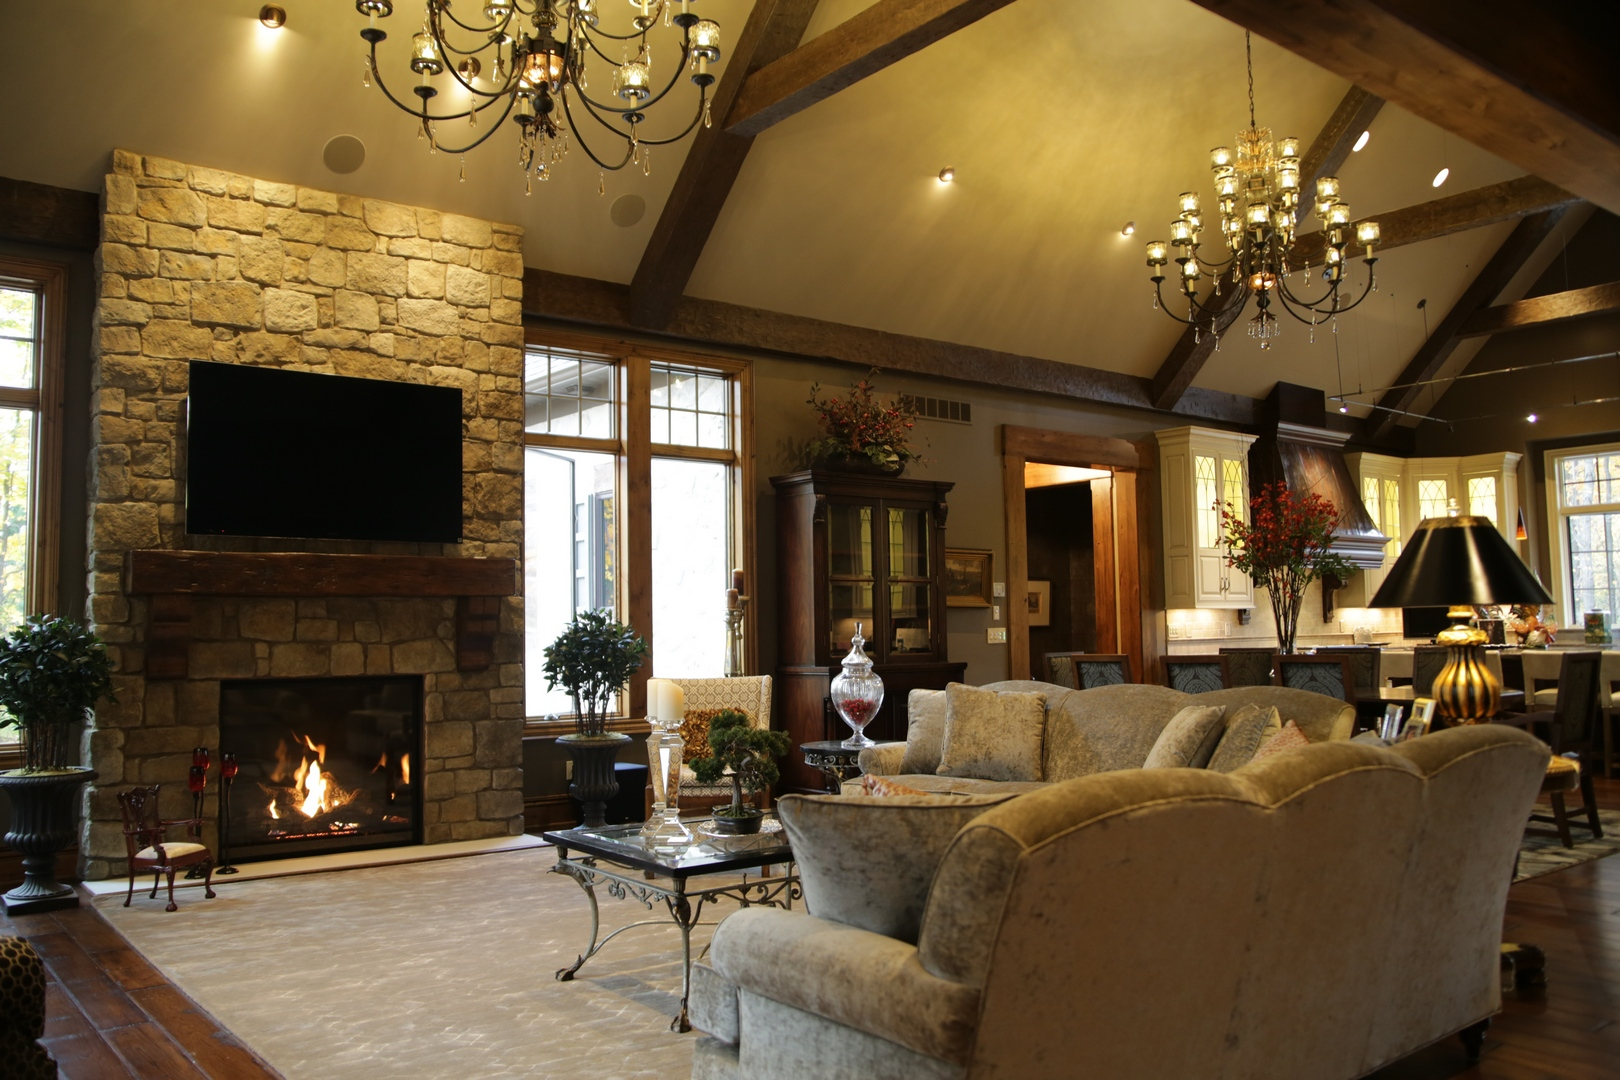 Kc02 Family Room 1 Prestige Homes Luxury Home Builders